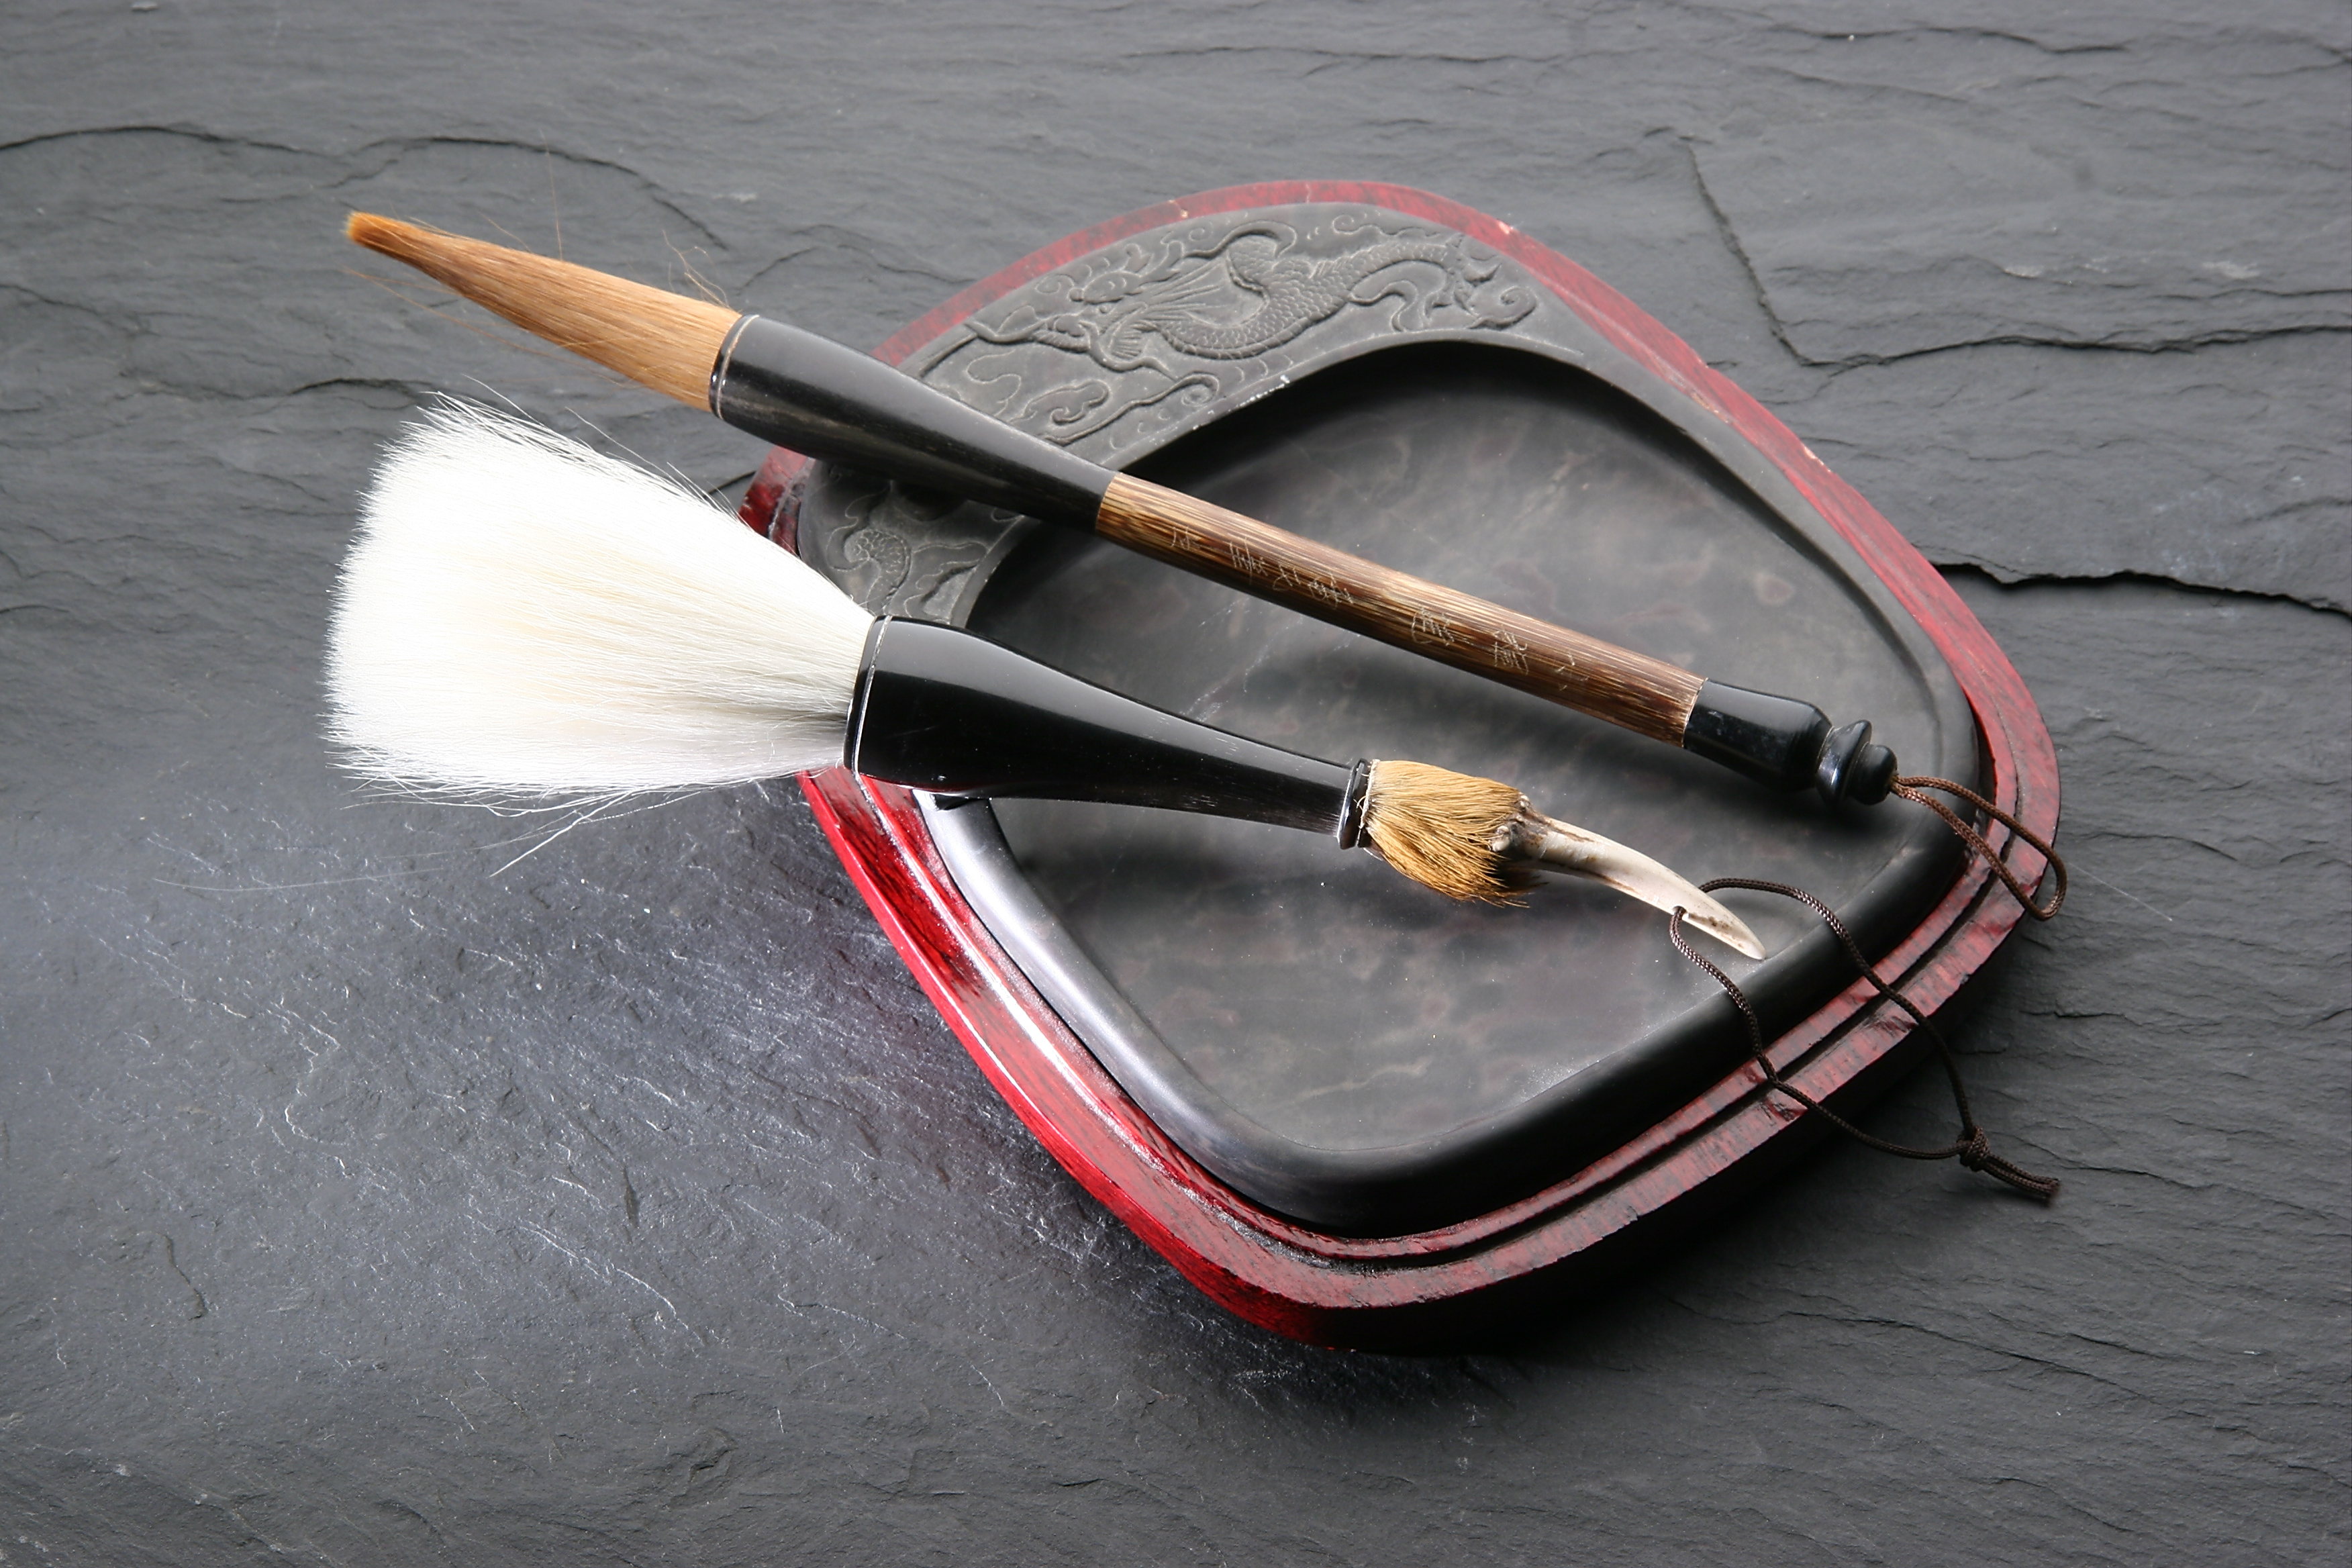 Chinese calligraphy brushes and inkwell.jpg - Chinese calligraphy brushes and inkwell